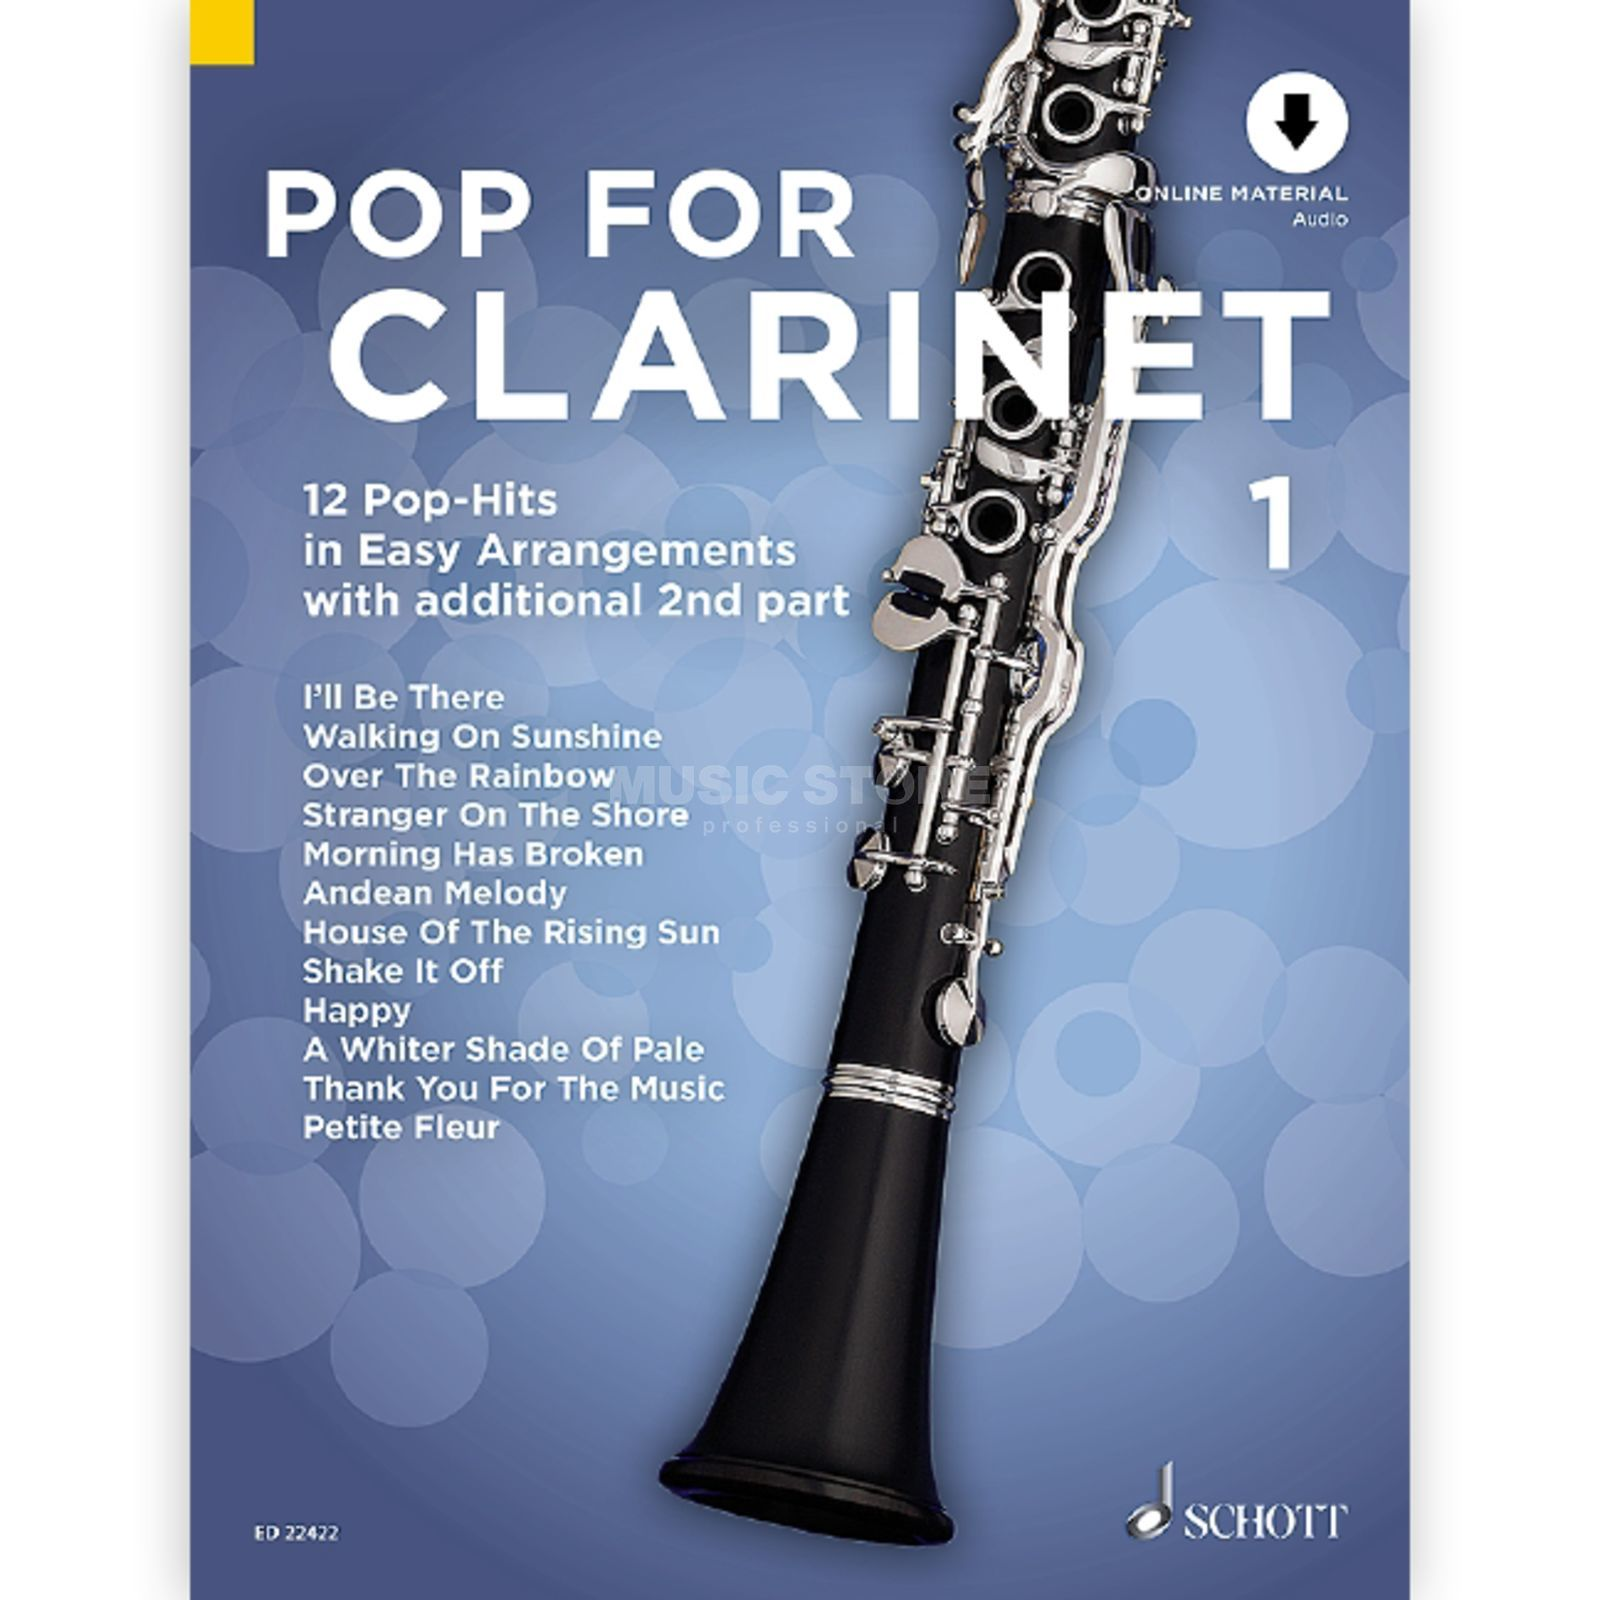 Schott Music Pop For Clarinet 1 Product Image